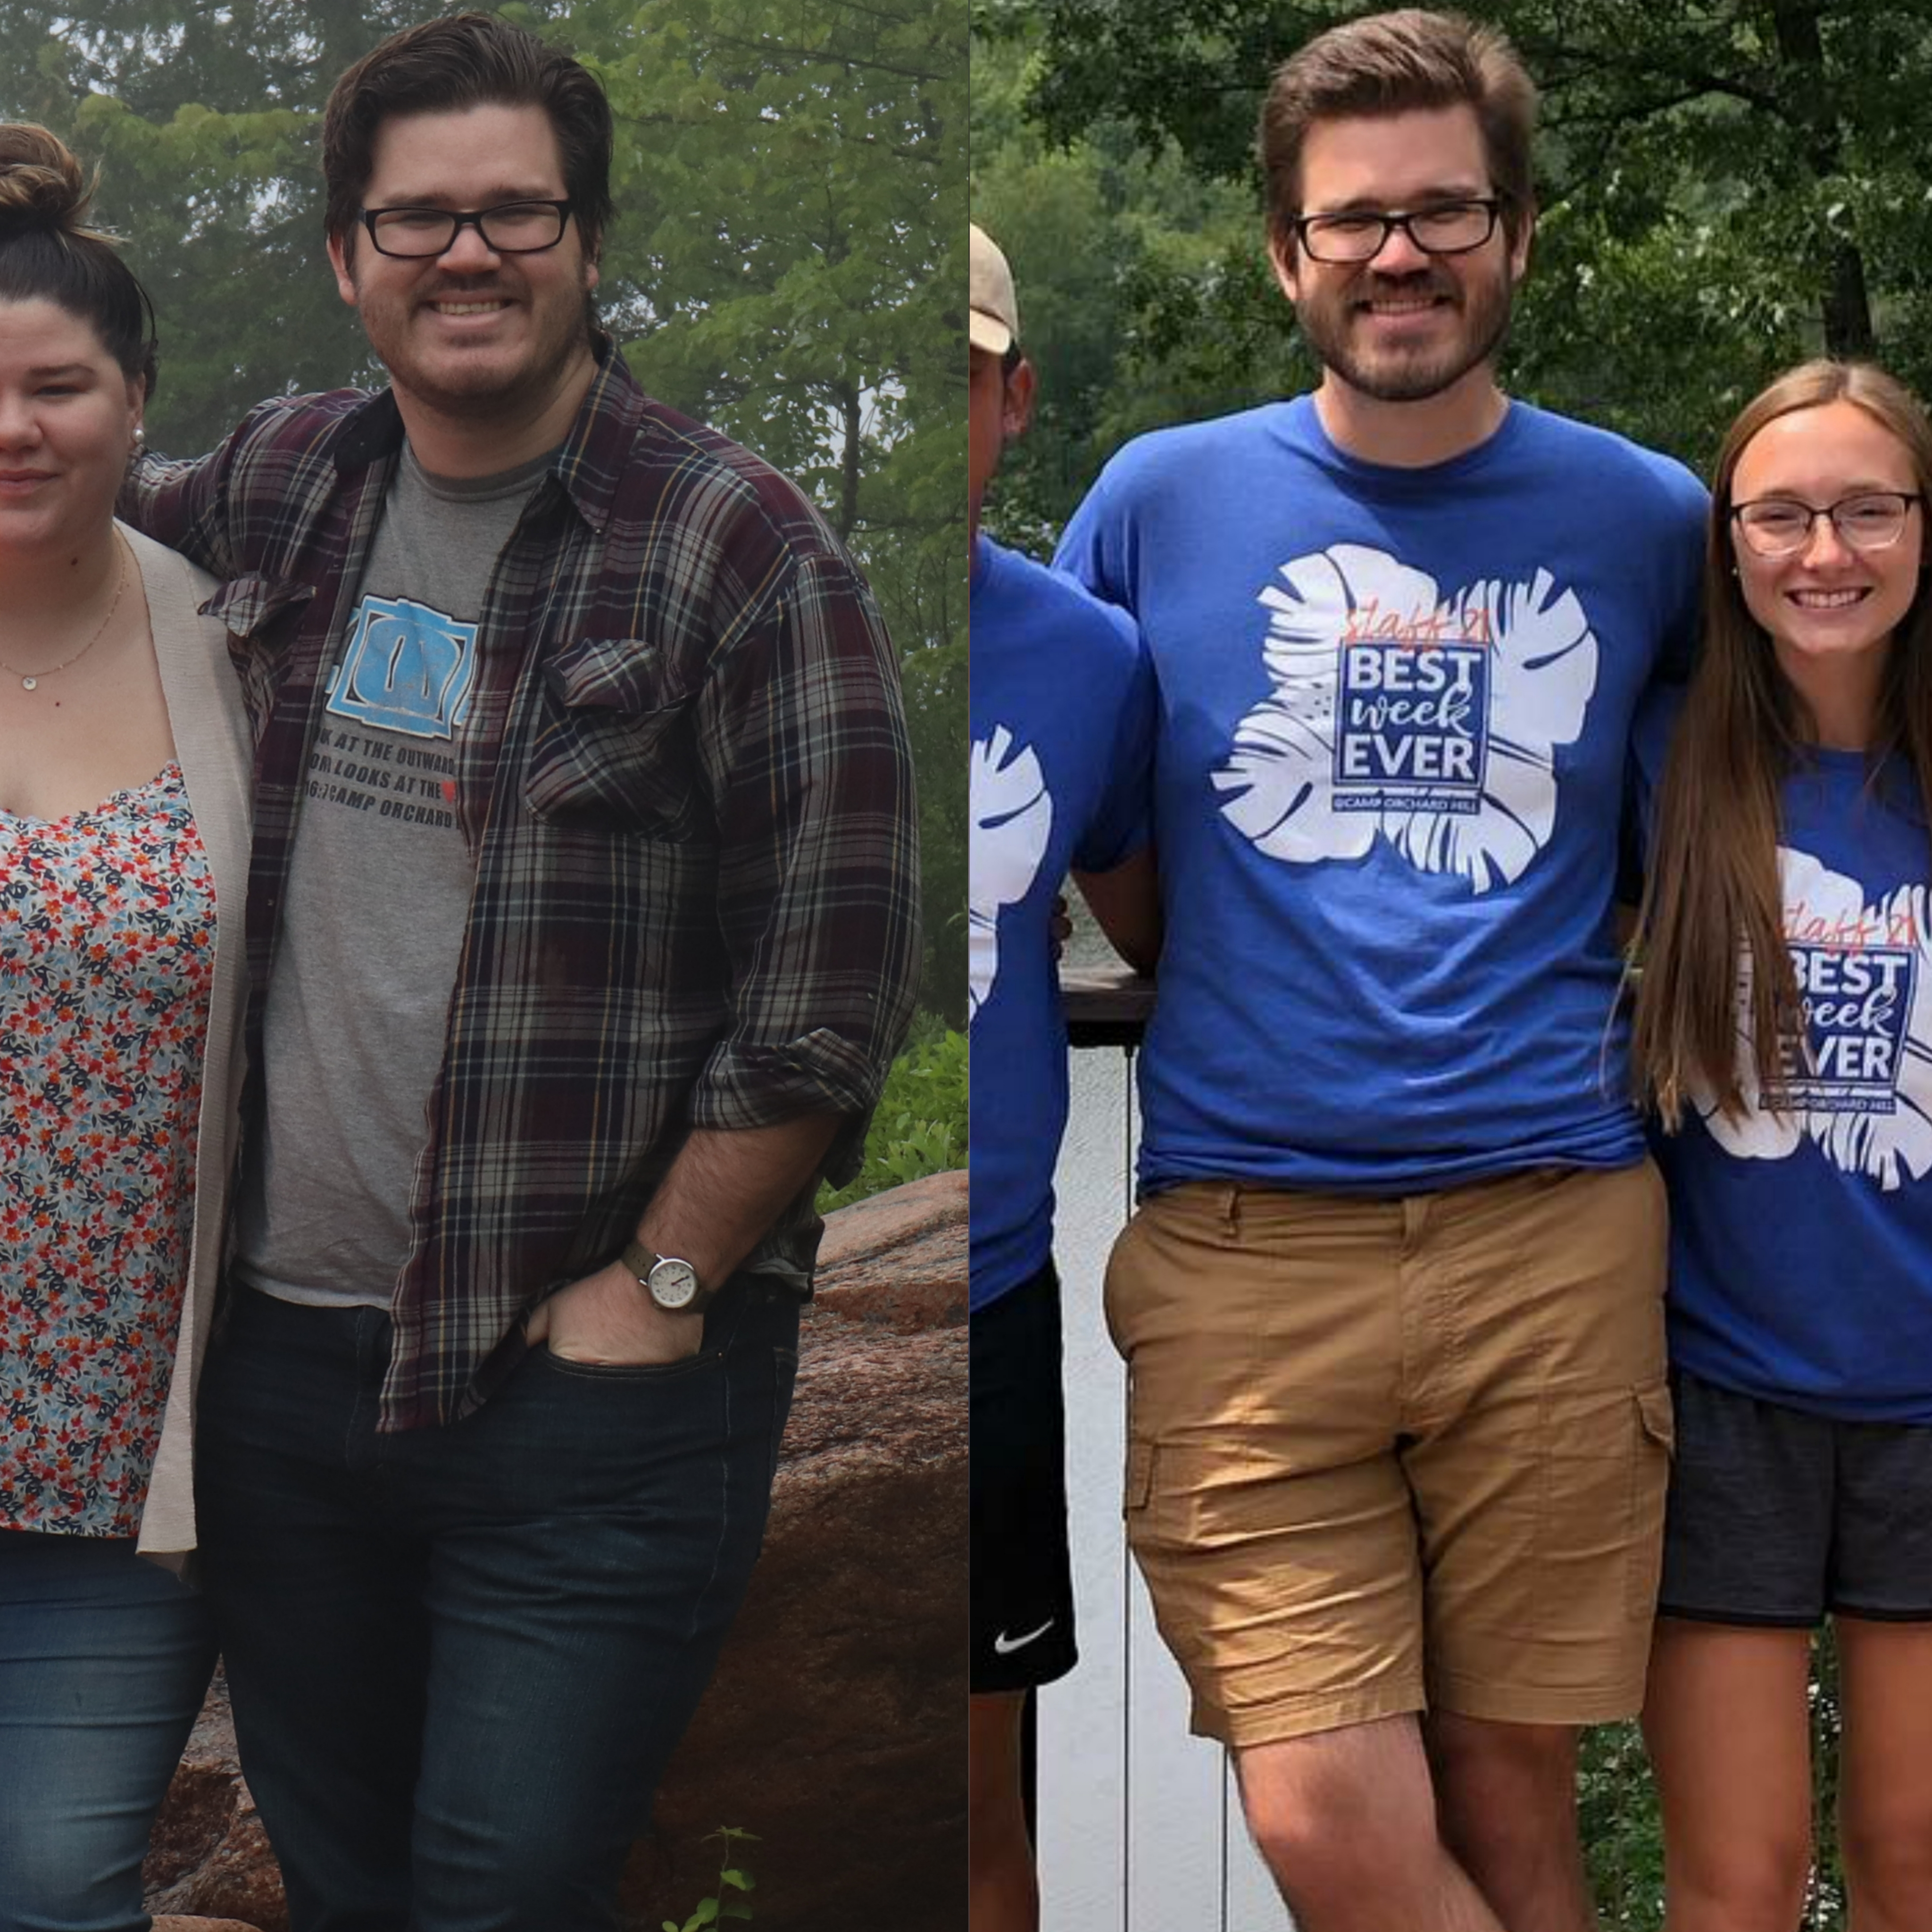 Before and After 70 lbs Weight Loss 6'4 Male 300 lbs to 230 lbs